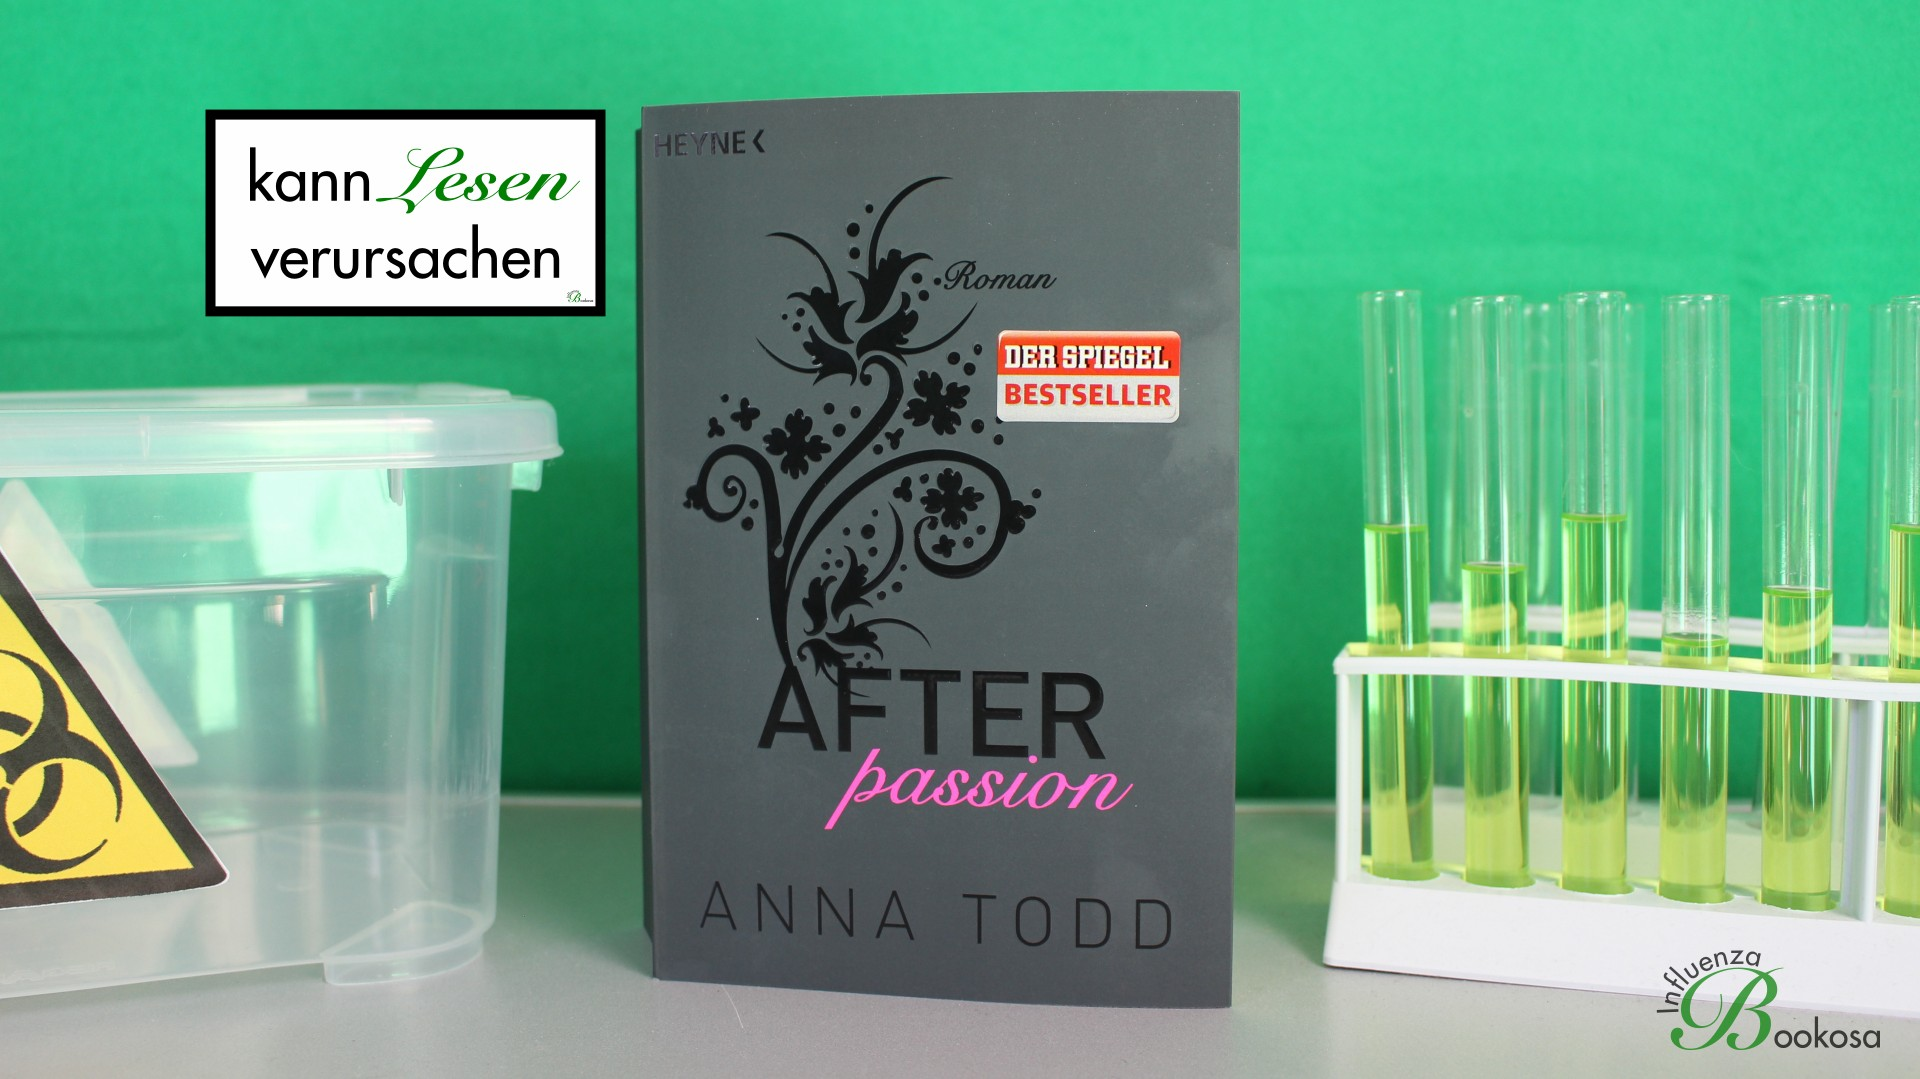 Anna Todd - After passion